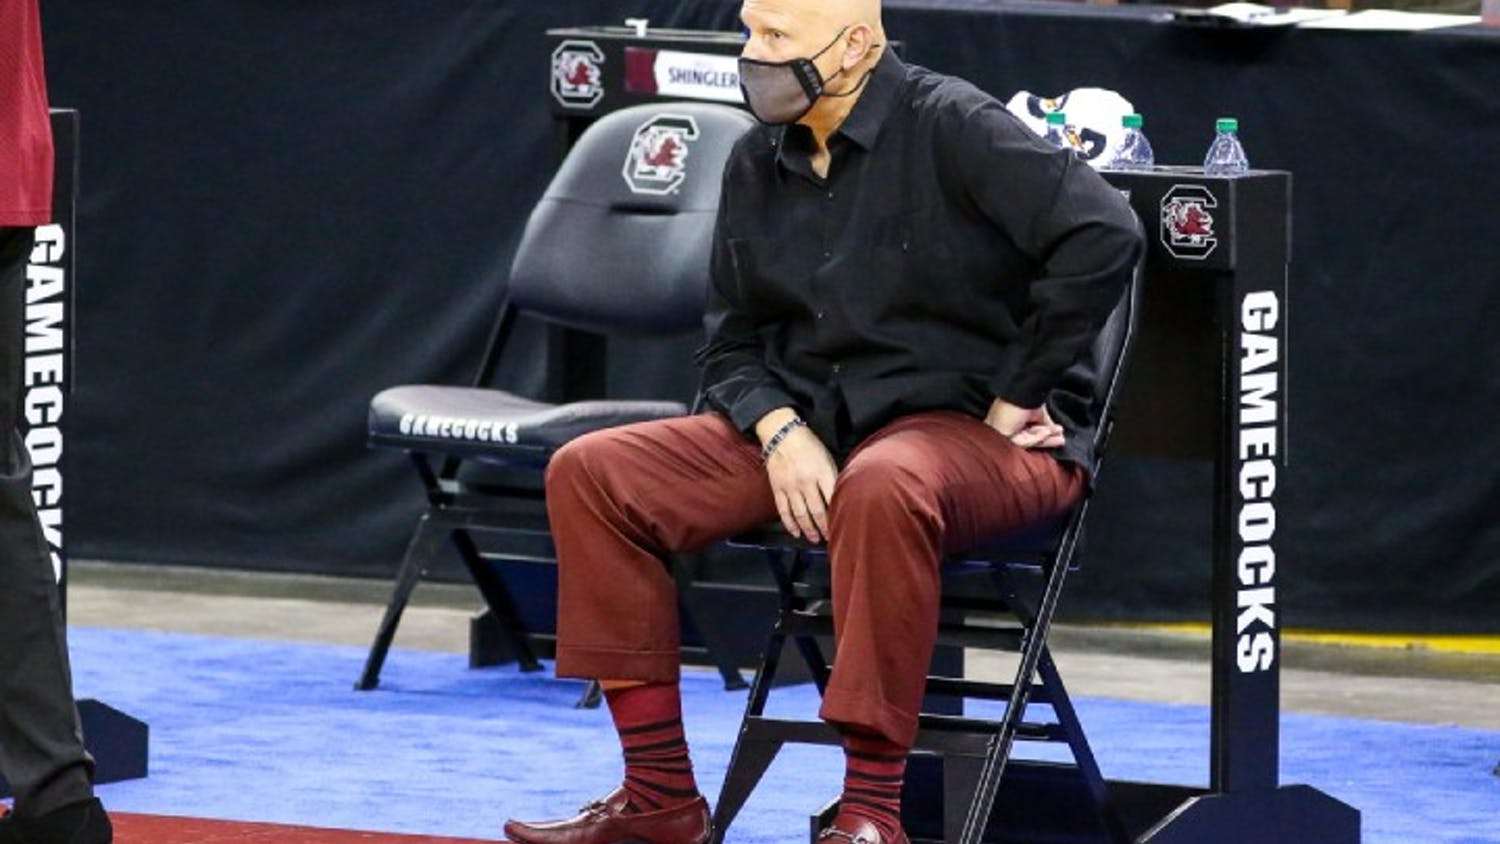 Head basketball coach Frank Martin watches from the sidelines in a 2021 game against Ole Miss.